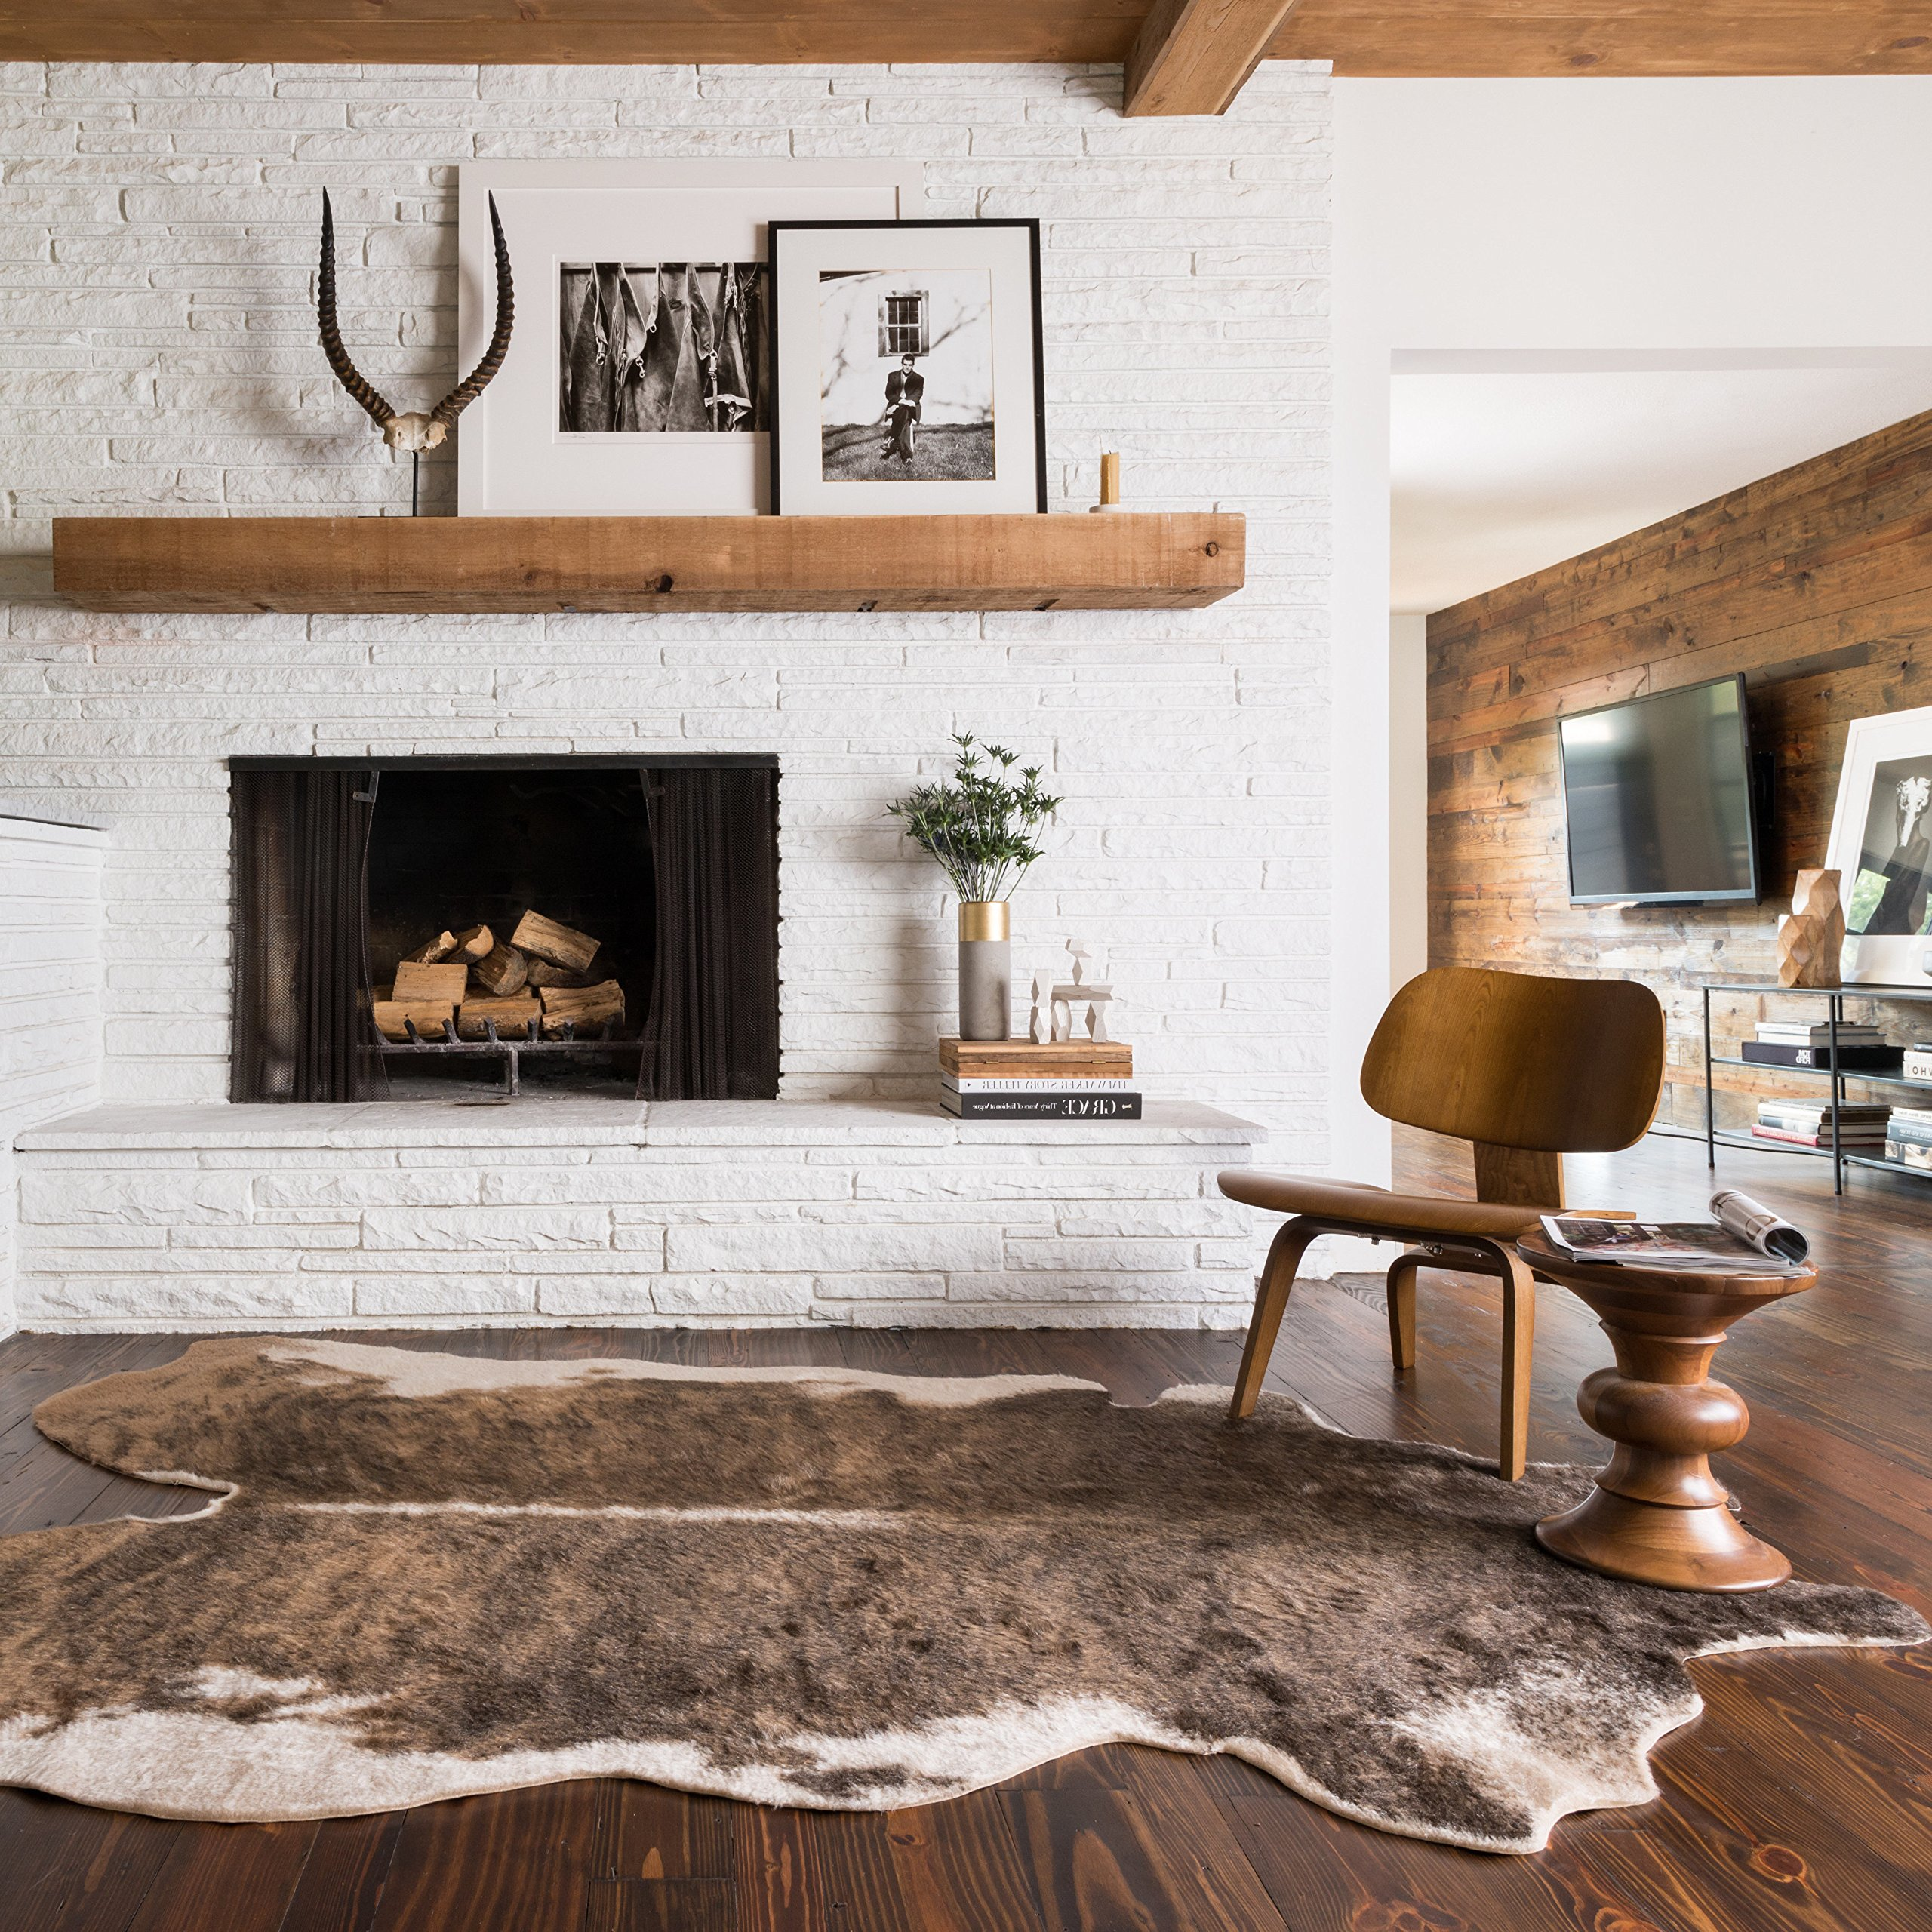 D&H 3'10 x5'ft Camel Beige Brown Animal Hide Faux Rawhide Area Rug, Indoor Southwestern Lodge Rustic Bedroom Living Room Flooring Rectangle Carpet, Country Style Cruelty Free Acrylic Synthetic Mat